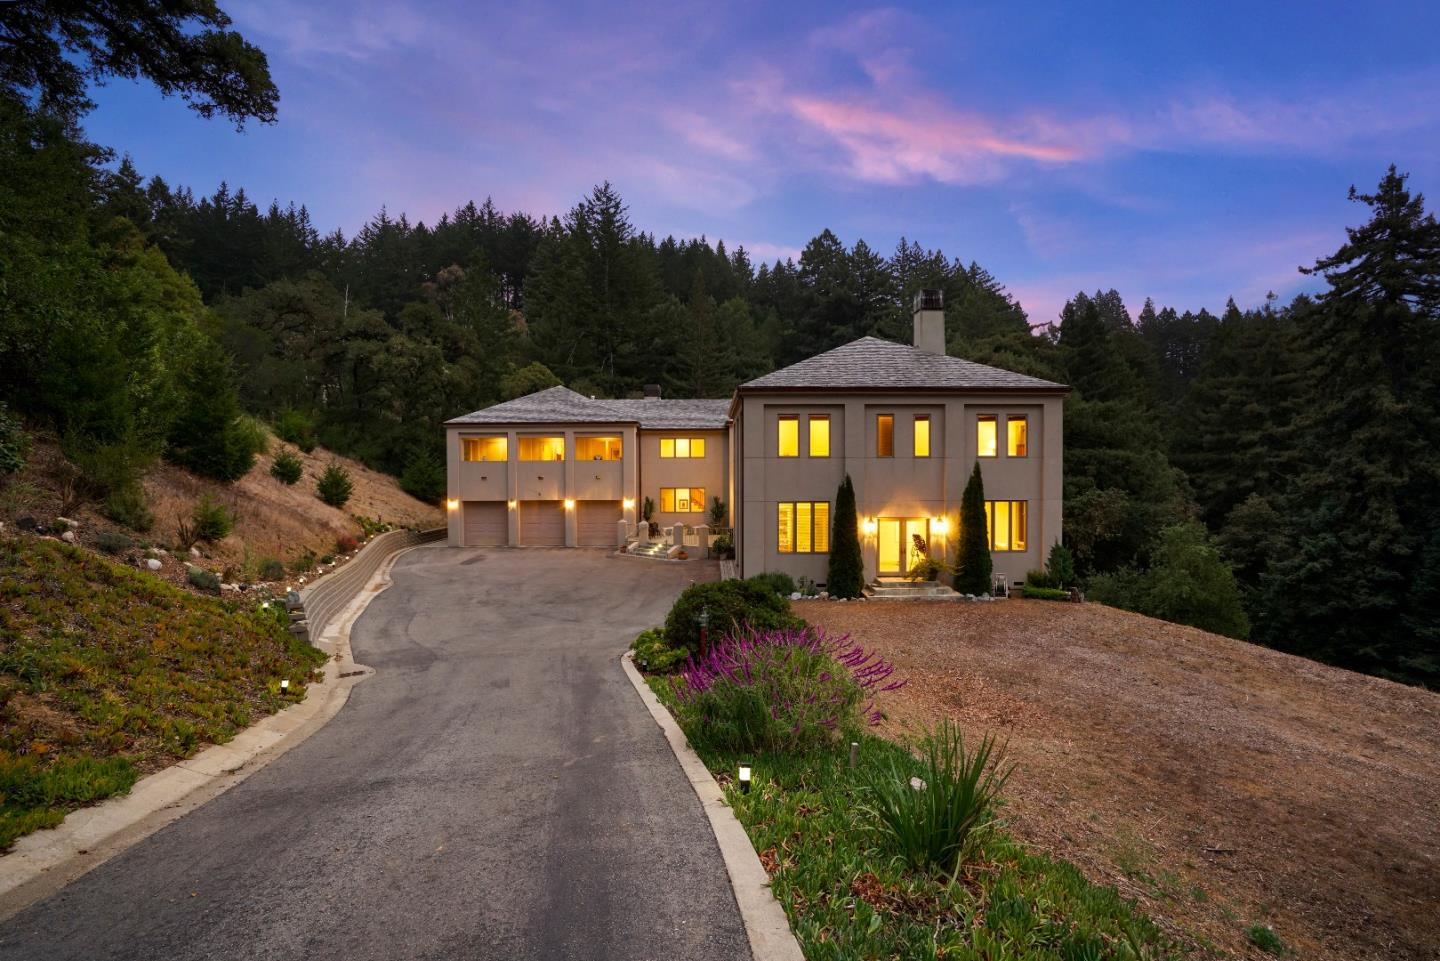 Single Family Home for Sale at 17900 Skyline Boulevard 17900 Skyline Boulevard Woodside, California 94062 United States